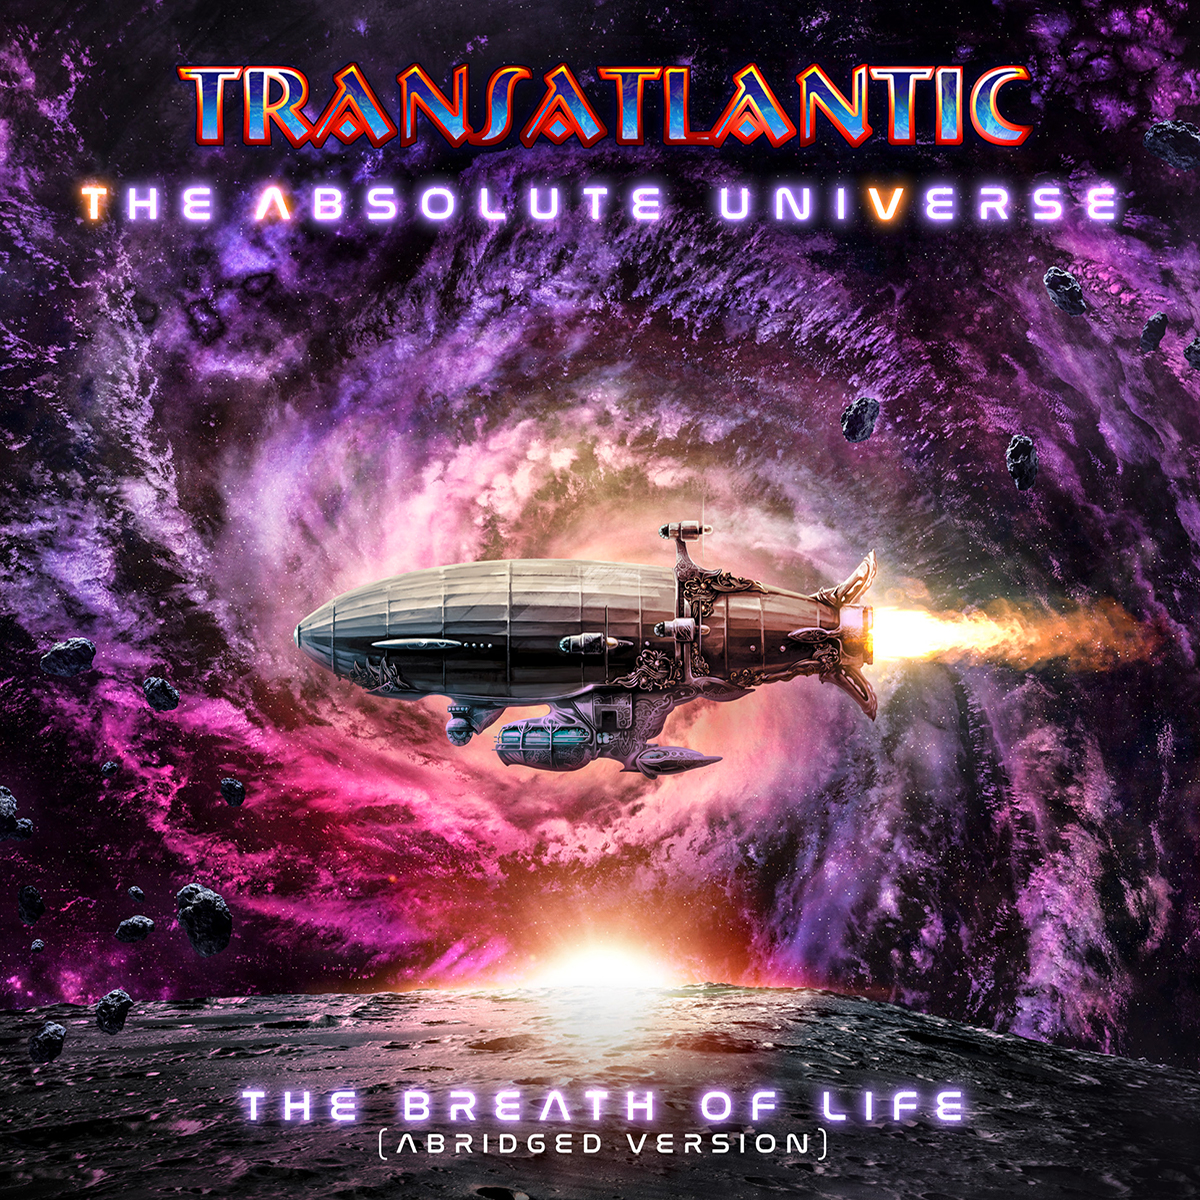 Transatlantic - The Absolute Universe The Breath Of Life (Abridged Version)